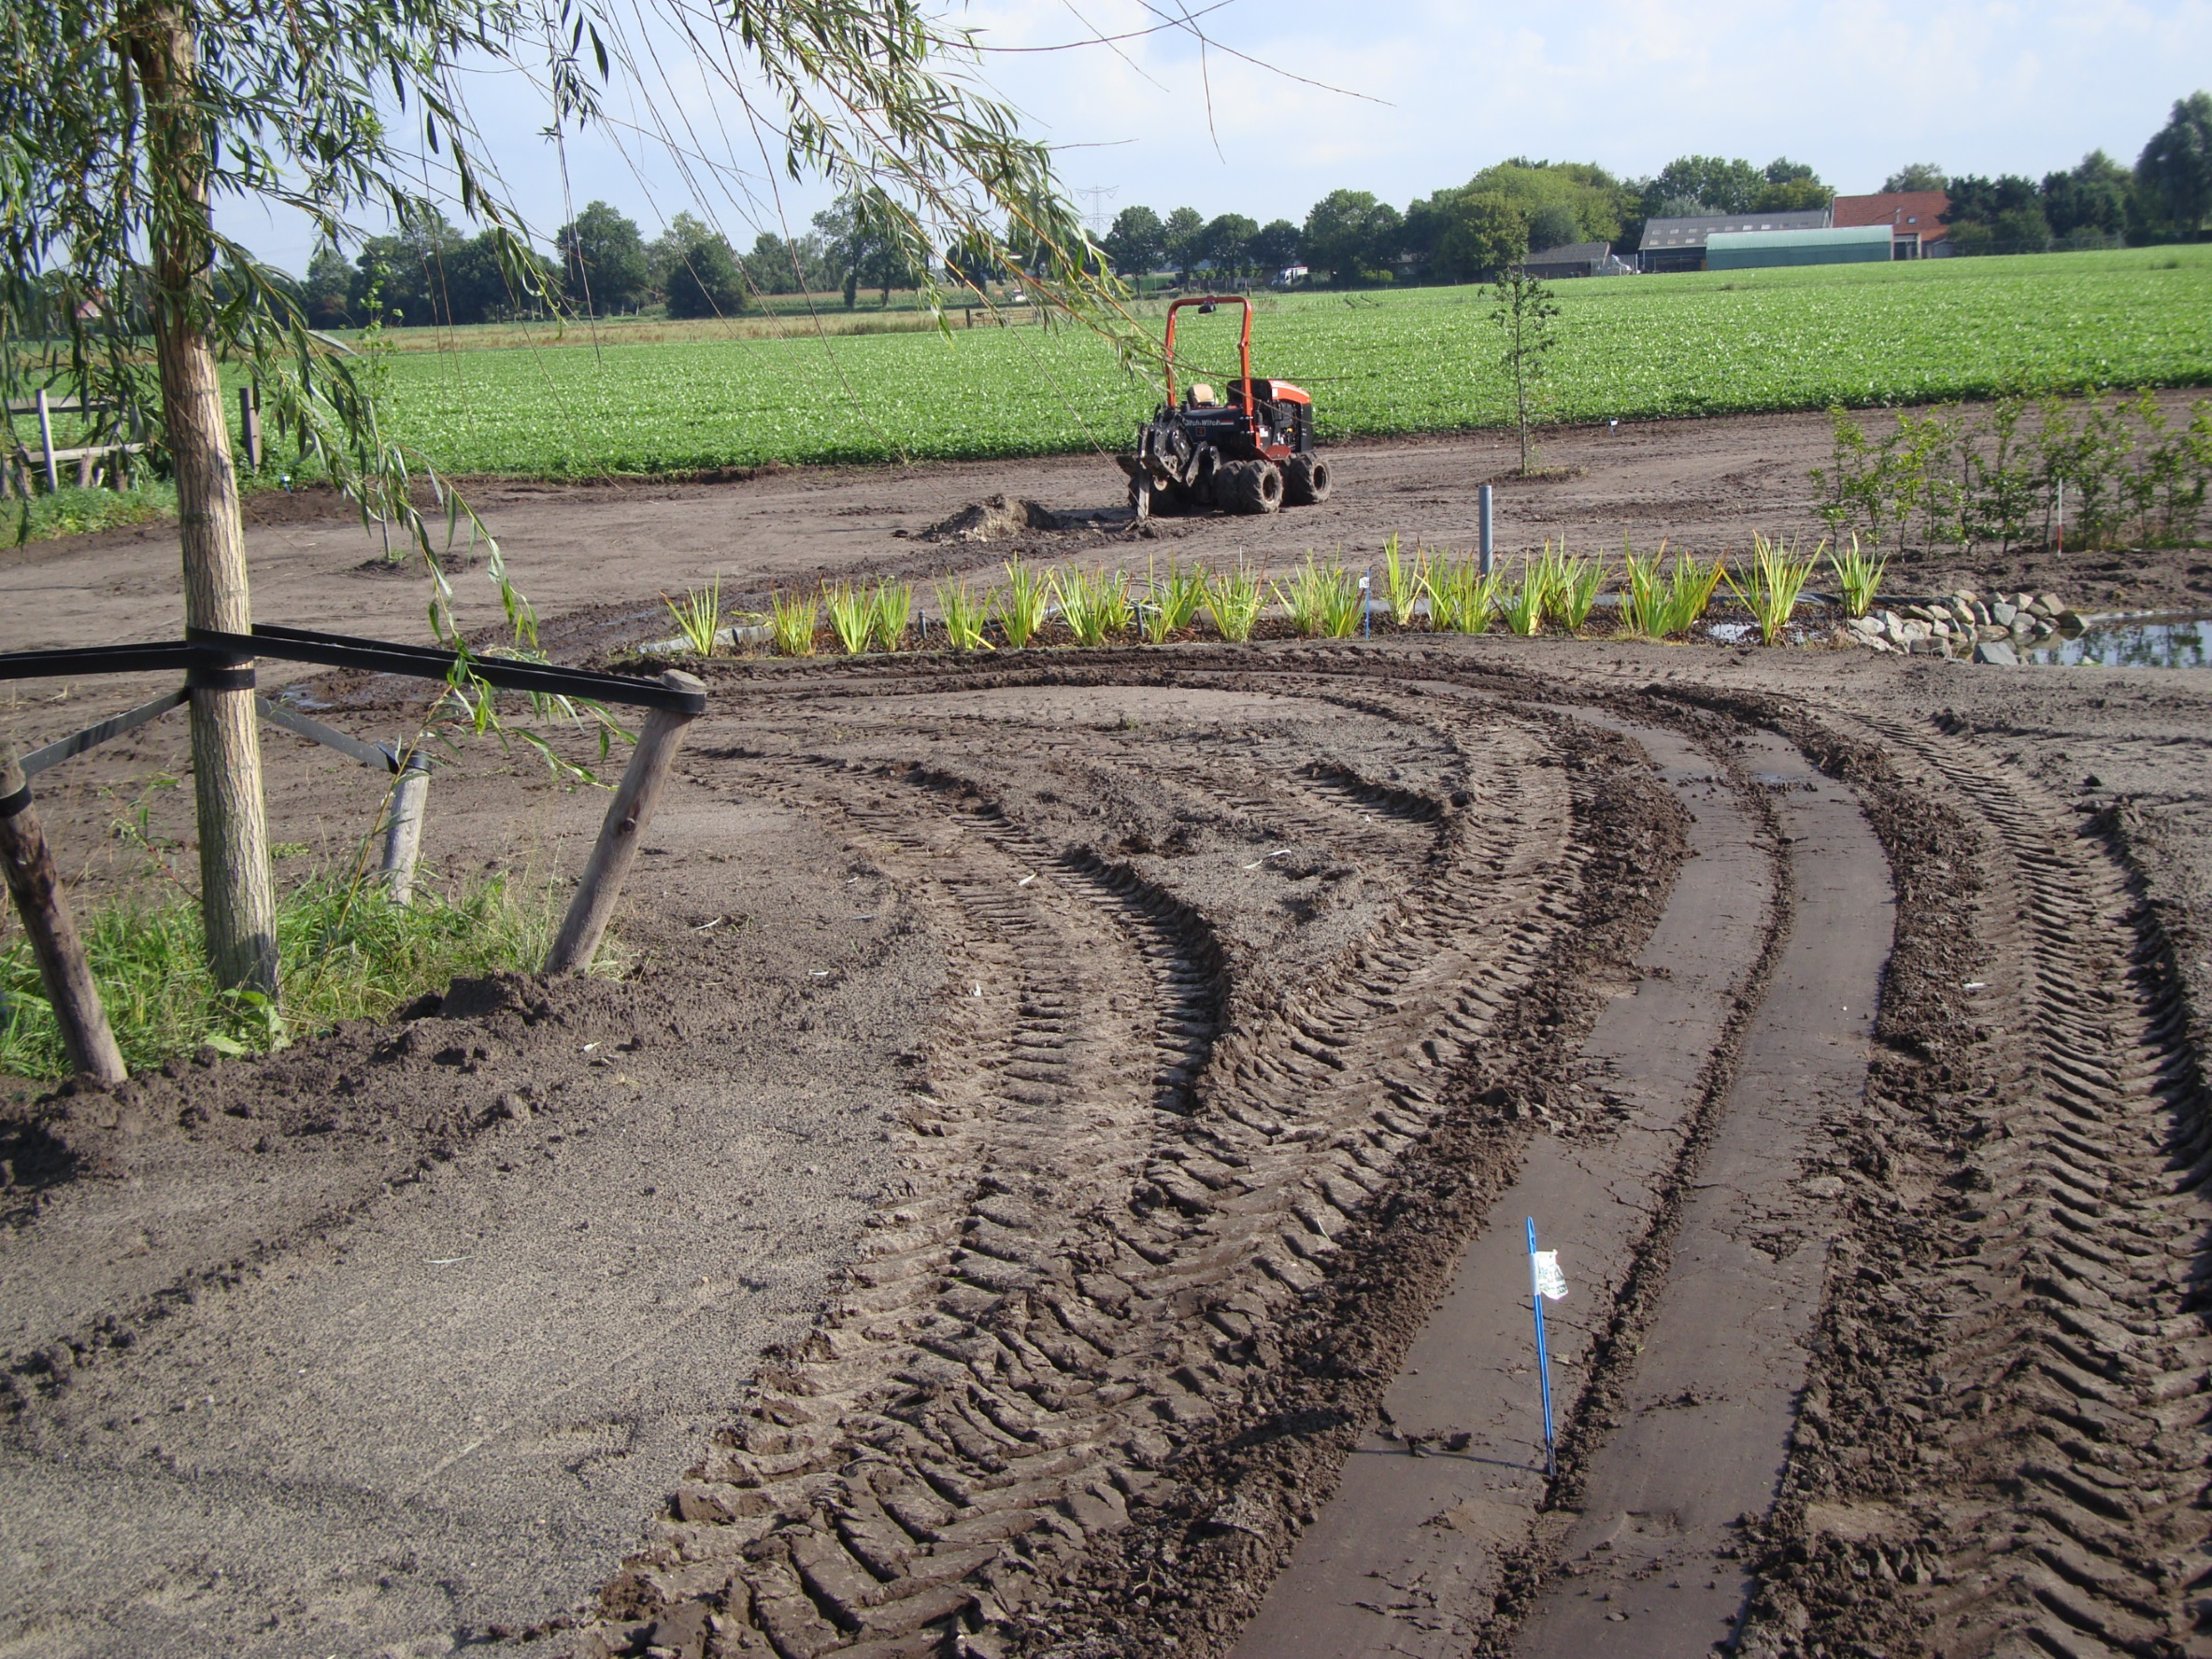 Aanleg tuinberegening met Ditch Witch